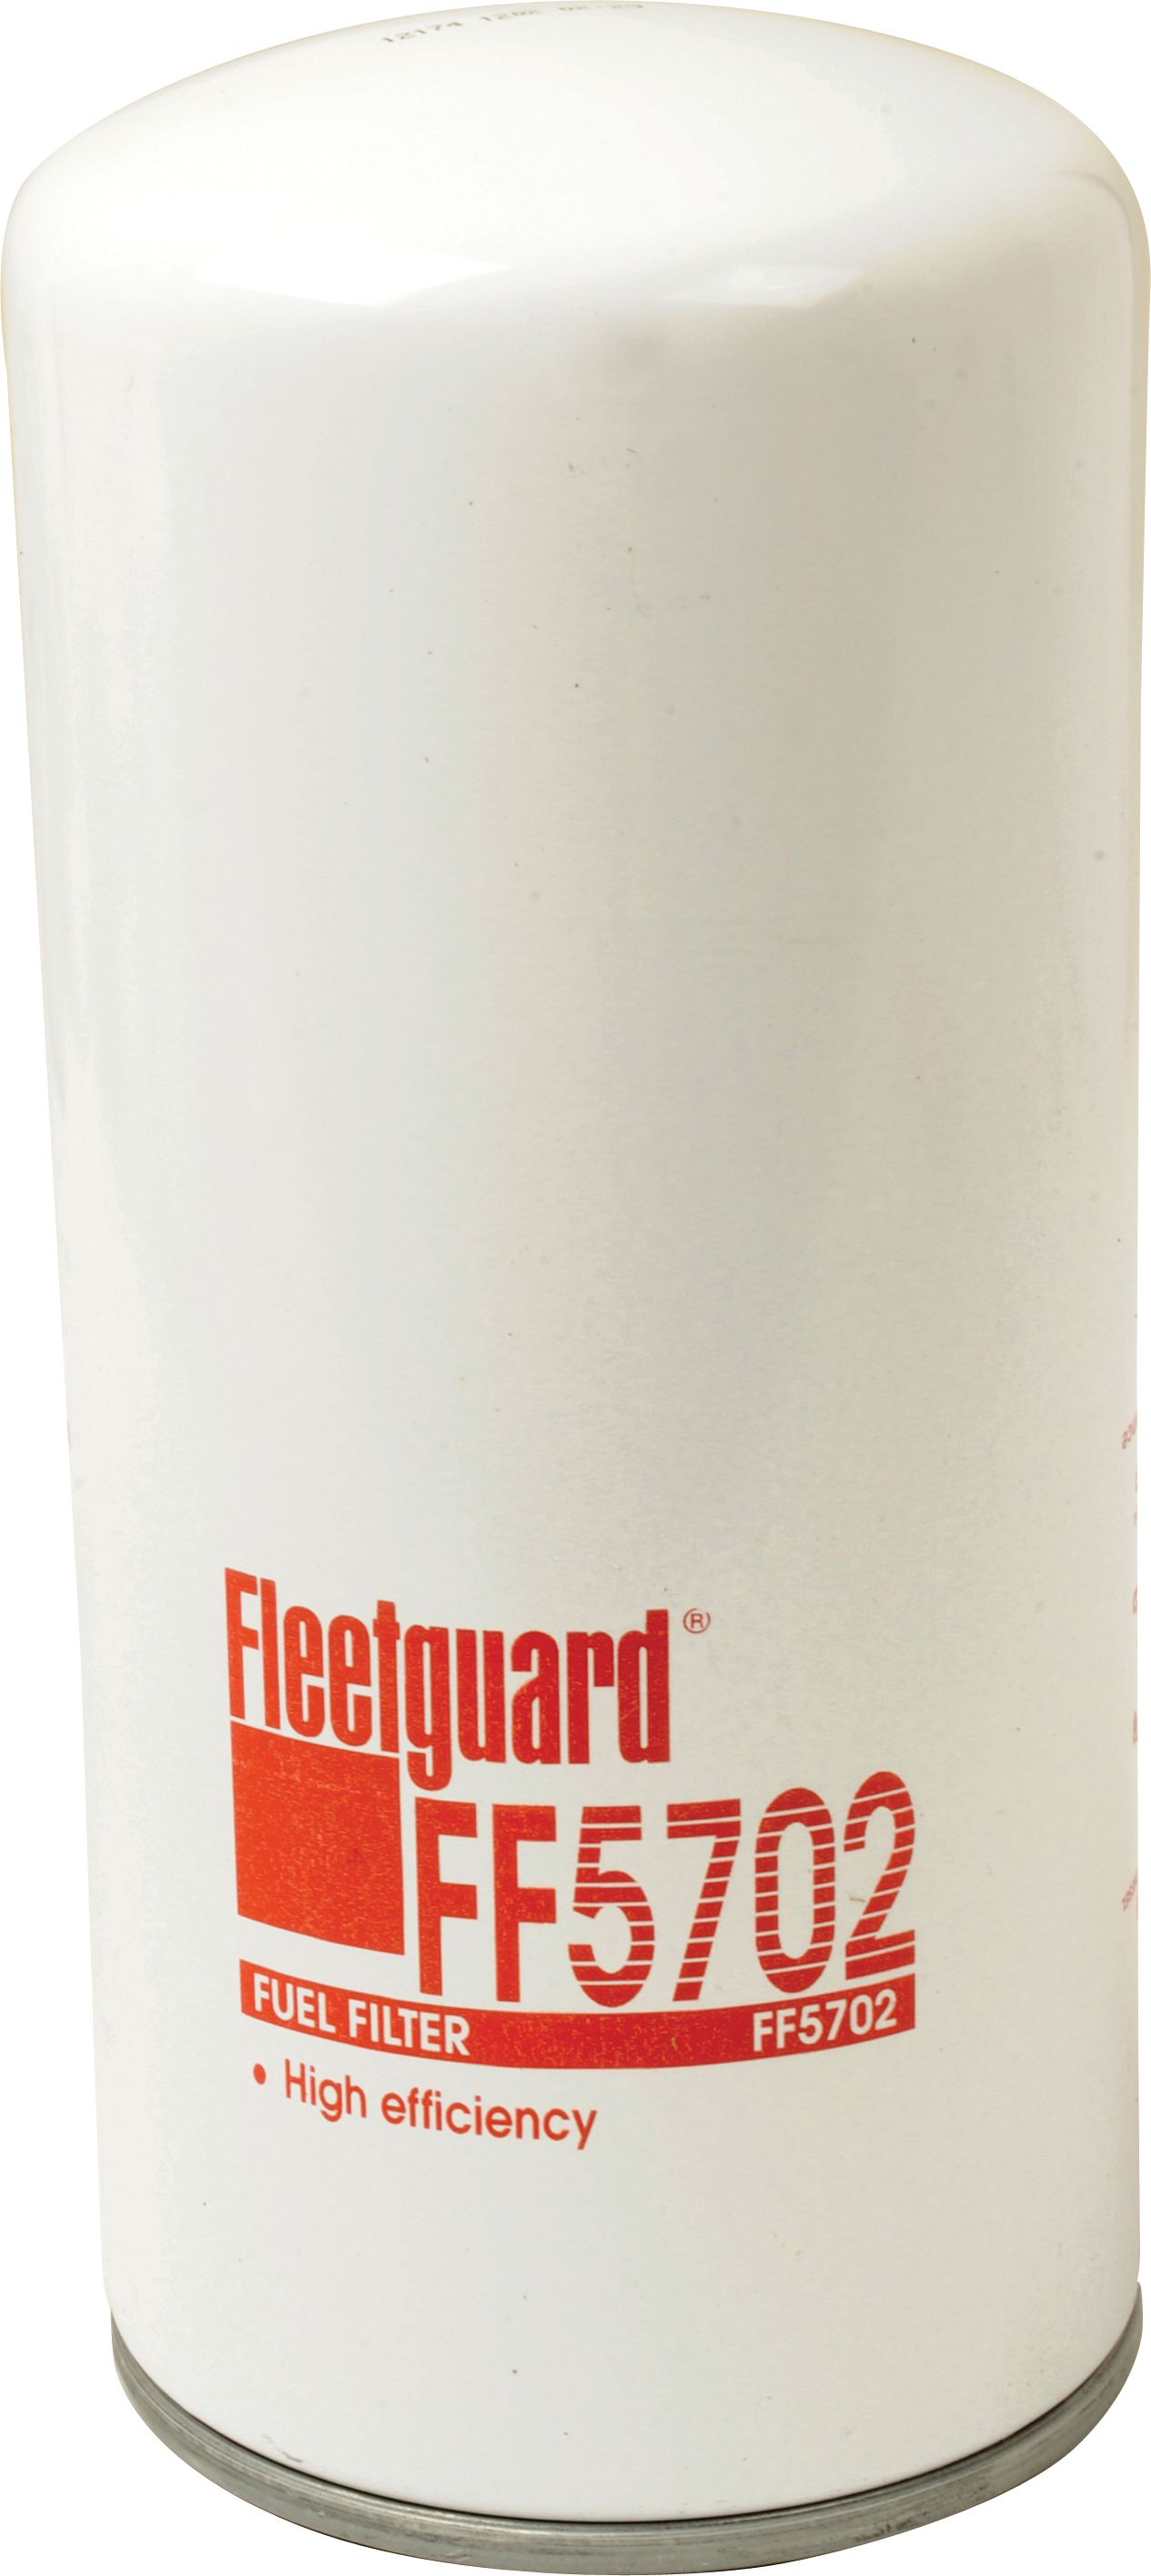 SAME FUEL FILTER FF5702 34595